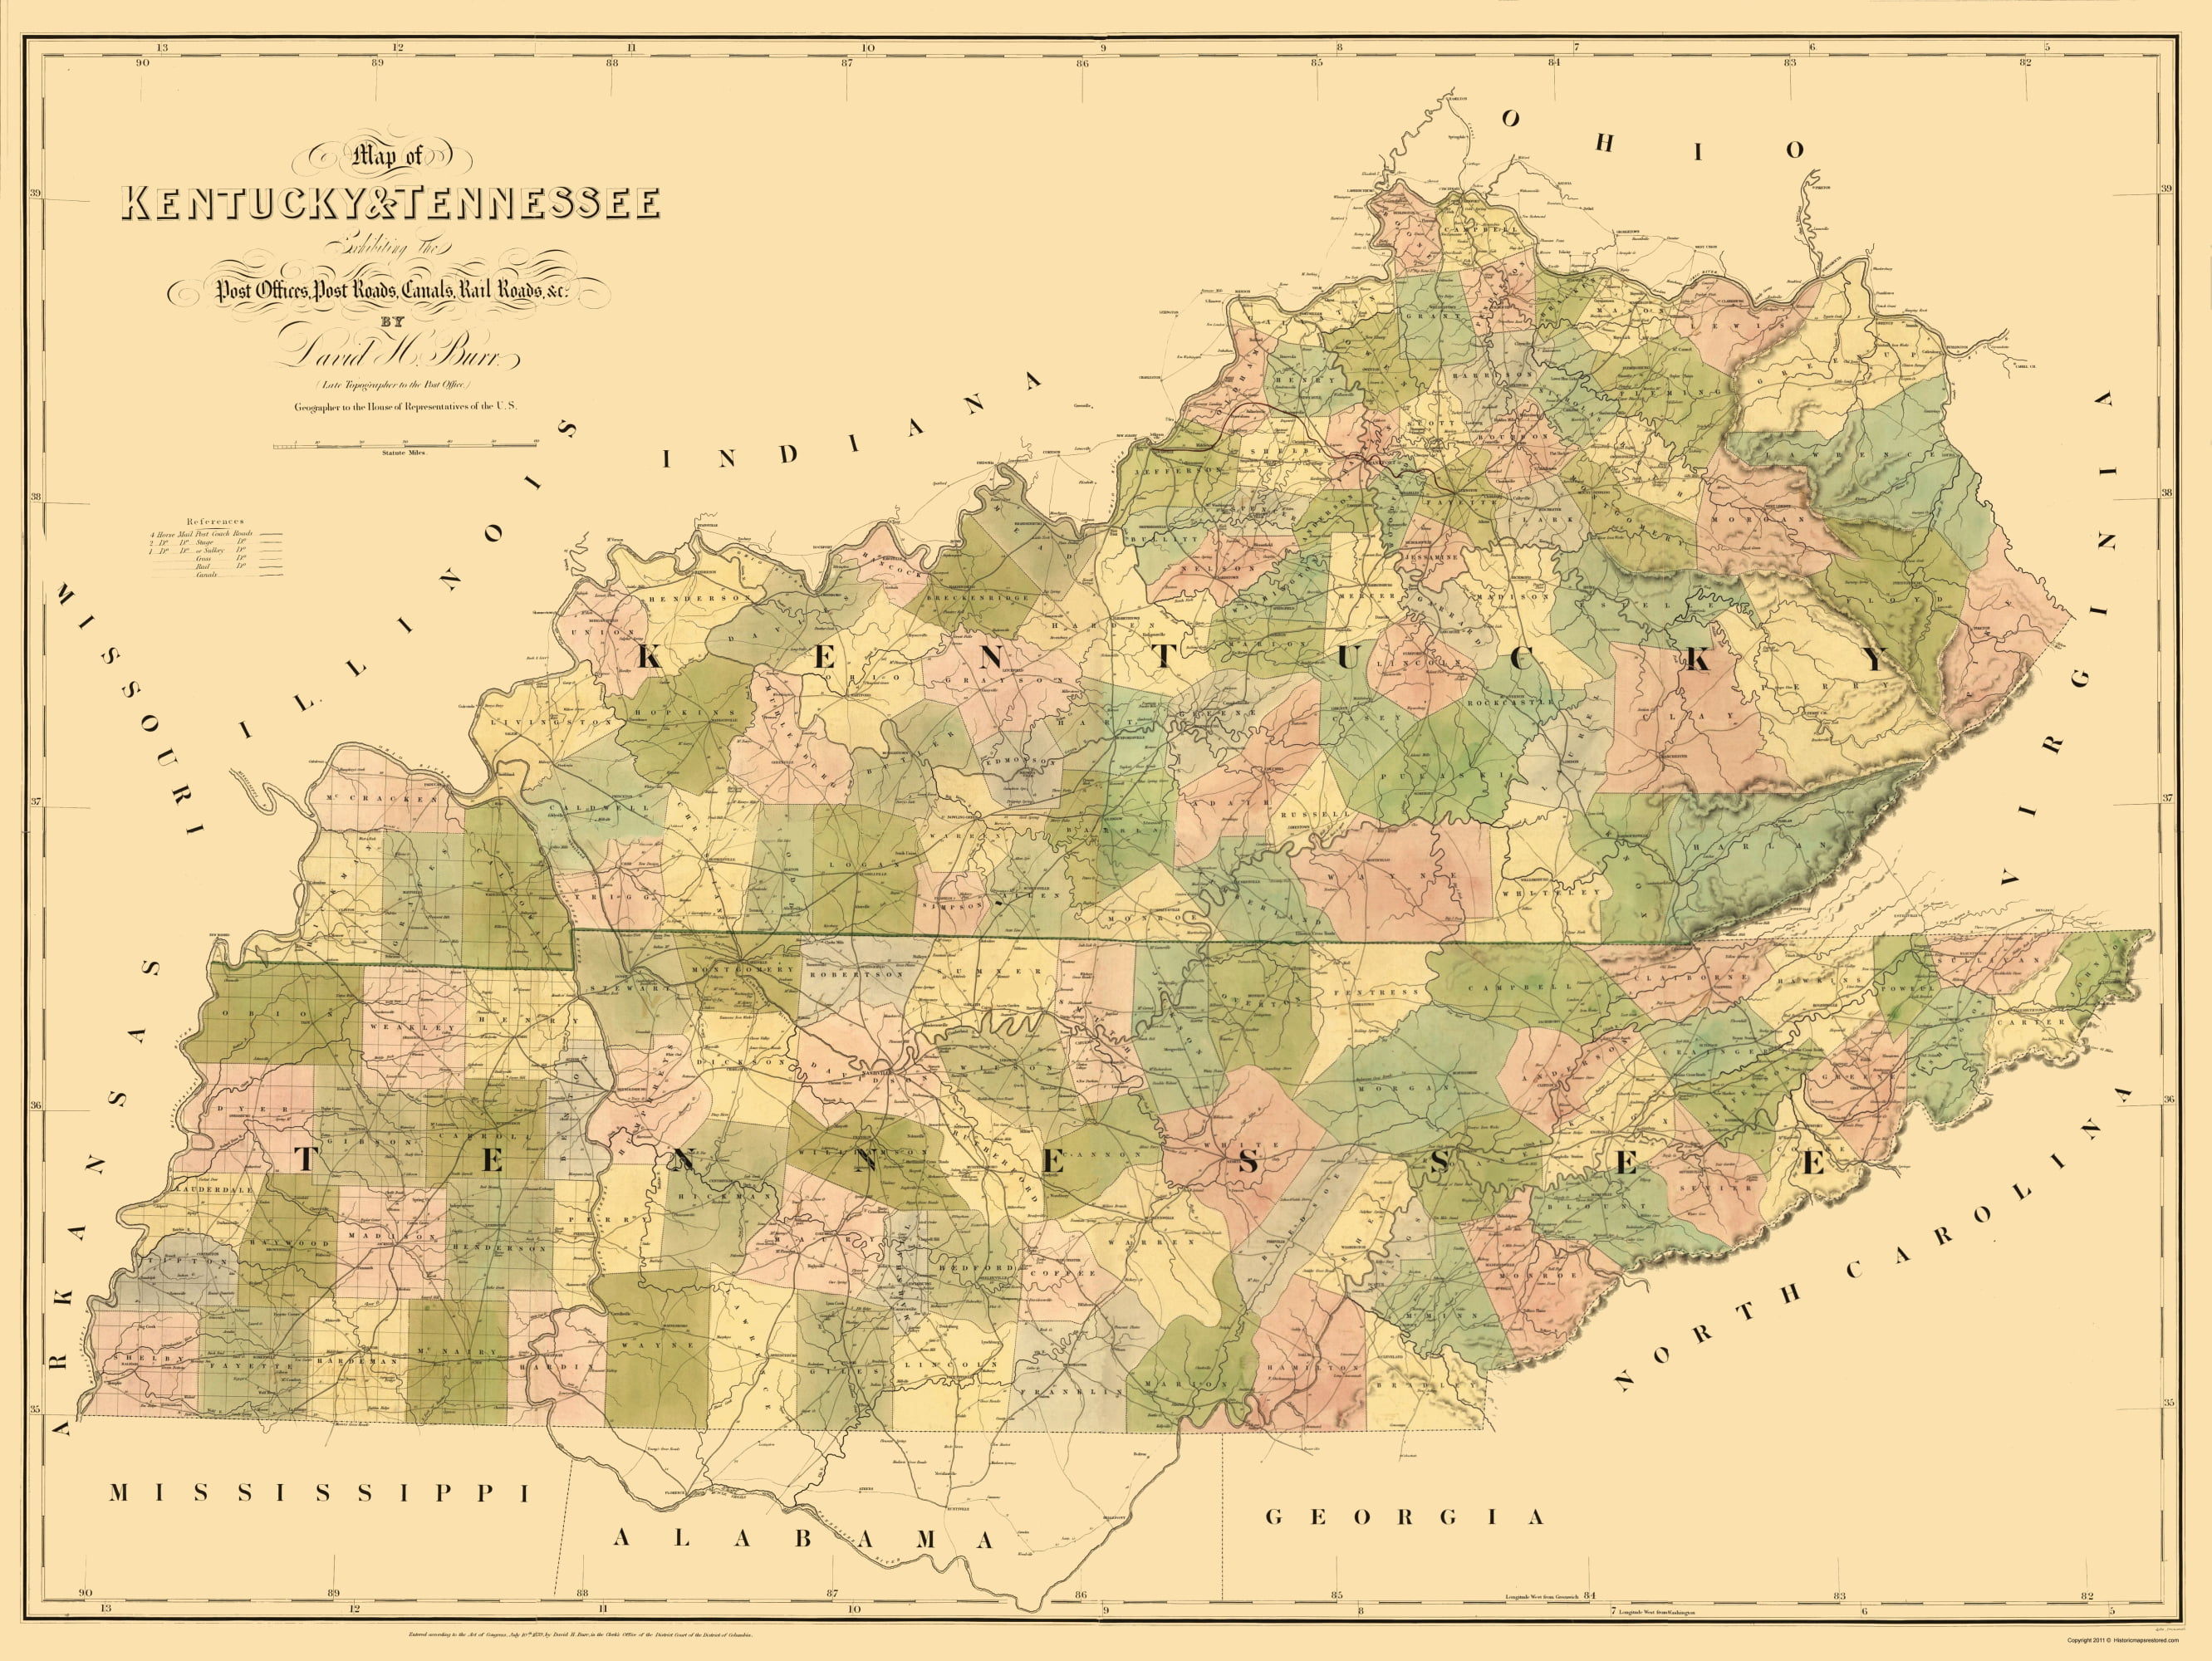 State Map Kentucky.Old State Map Kentucky Tennessee Burr 1839 23 X 30 62